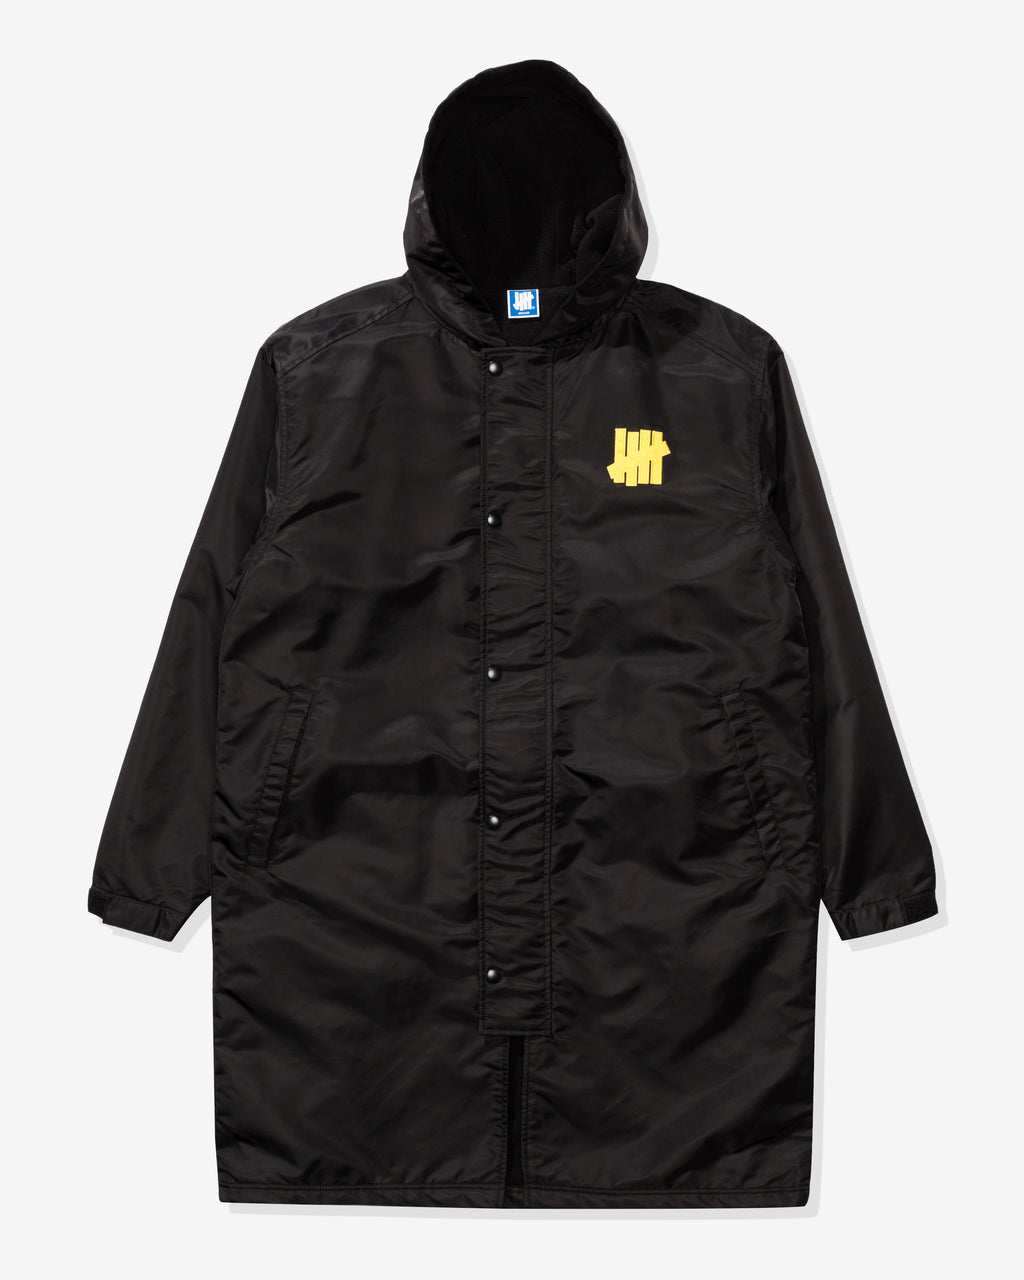 UNDEFEATED STATE STADIUM JACKET - BLACK